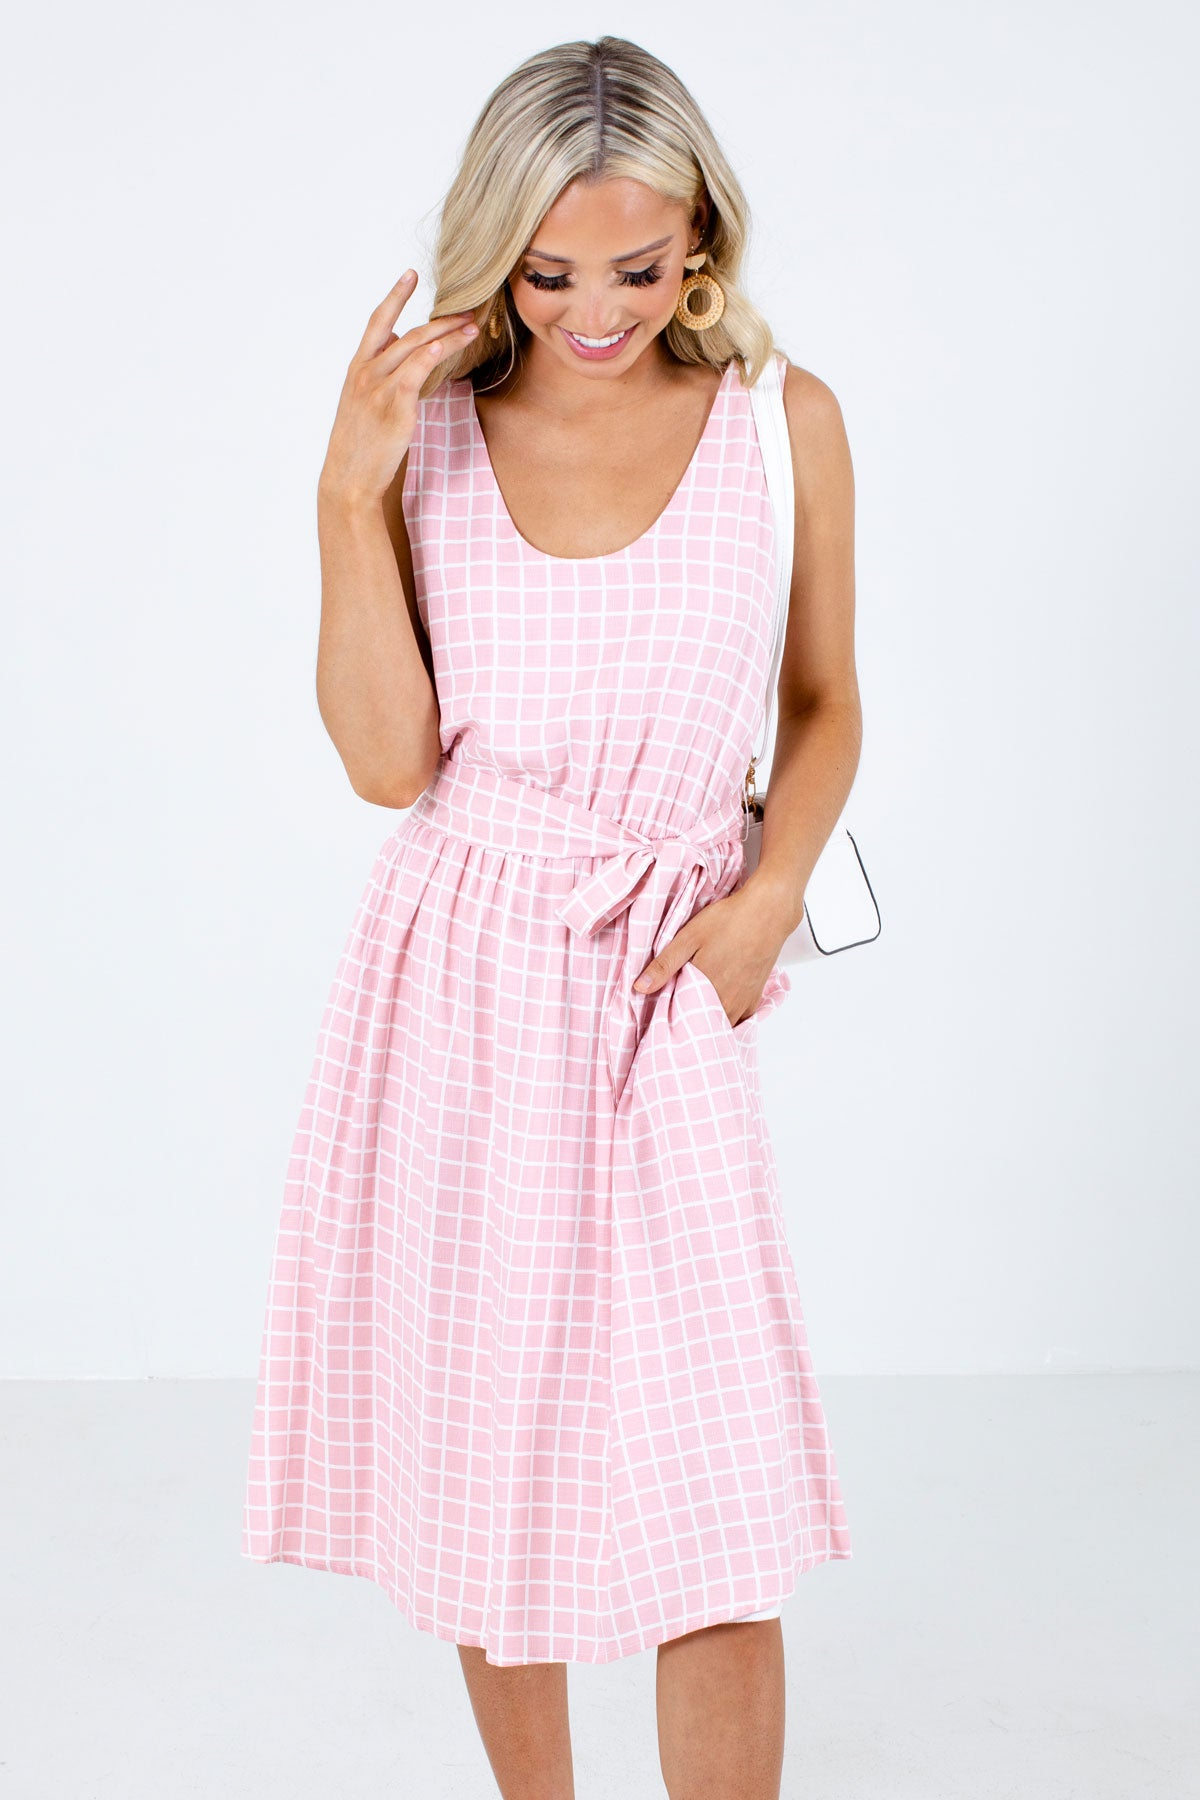 Pink and White Grid Patterned Boutique Midi Dresses for Women